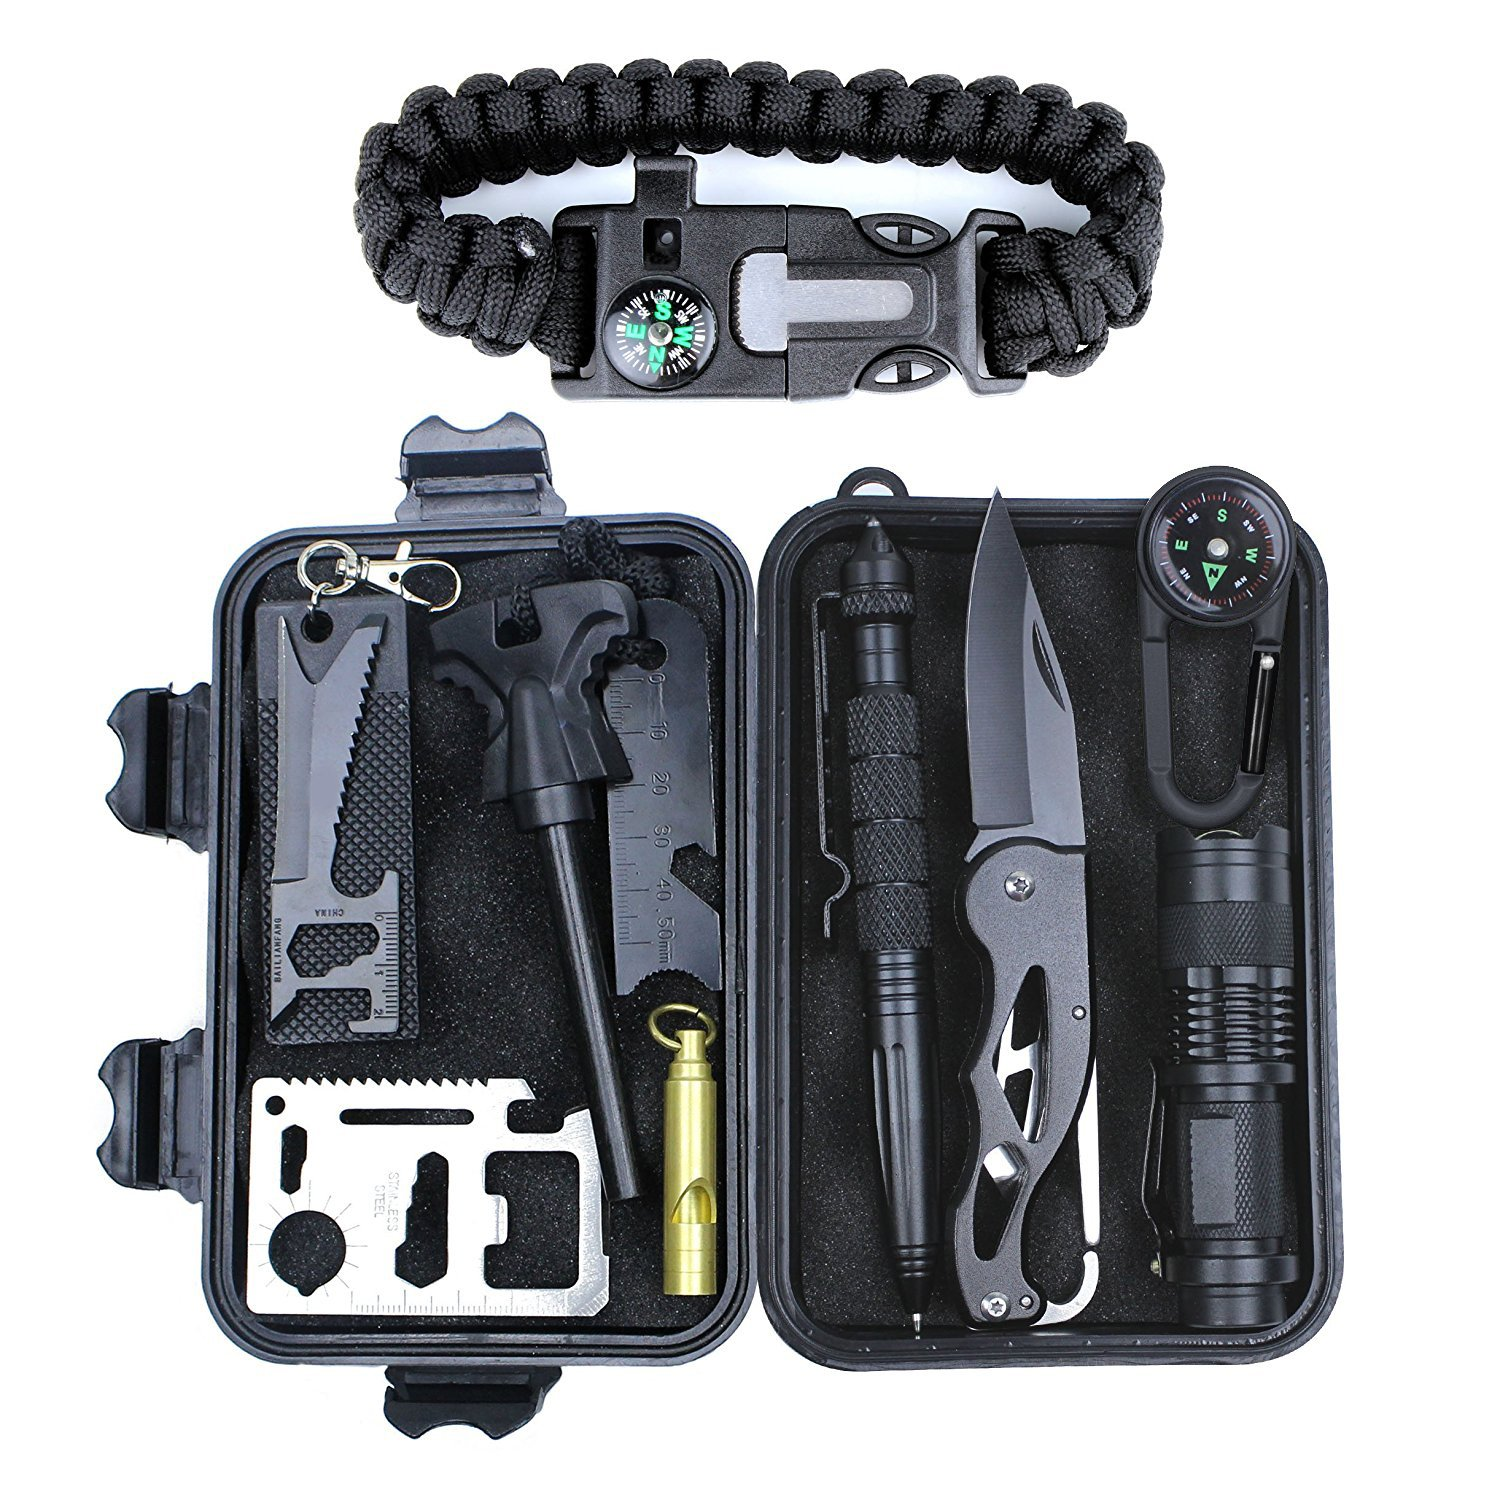 Survival Gear Kit 11 in 1, Professional Outdoor Emergency Survival Tools with Saber Card, Survival Bracelet, Temperature Compass, Powerful Whistle for Camp Hike Earthquake Overseas NBKTE